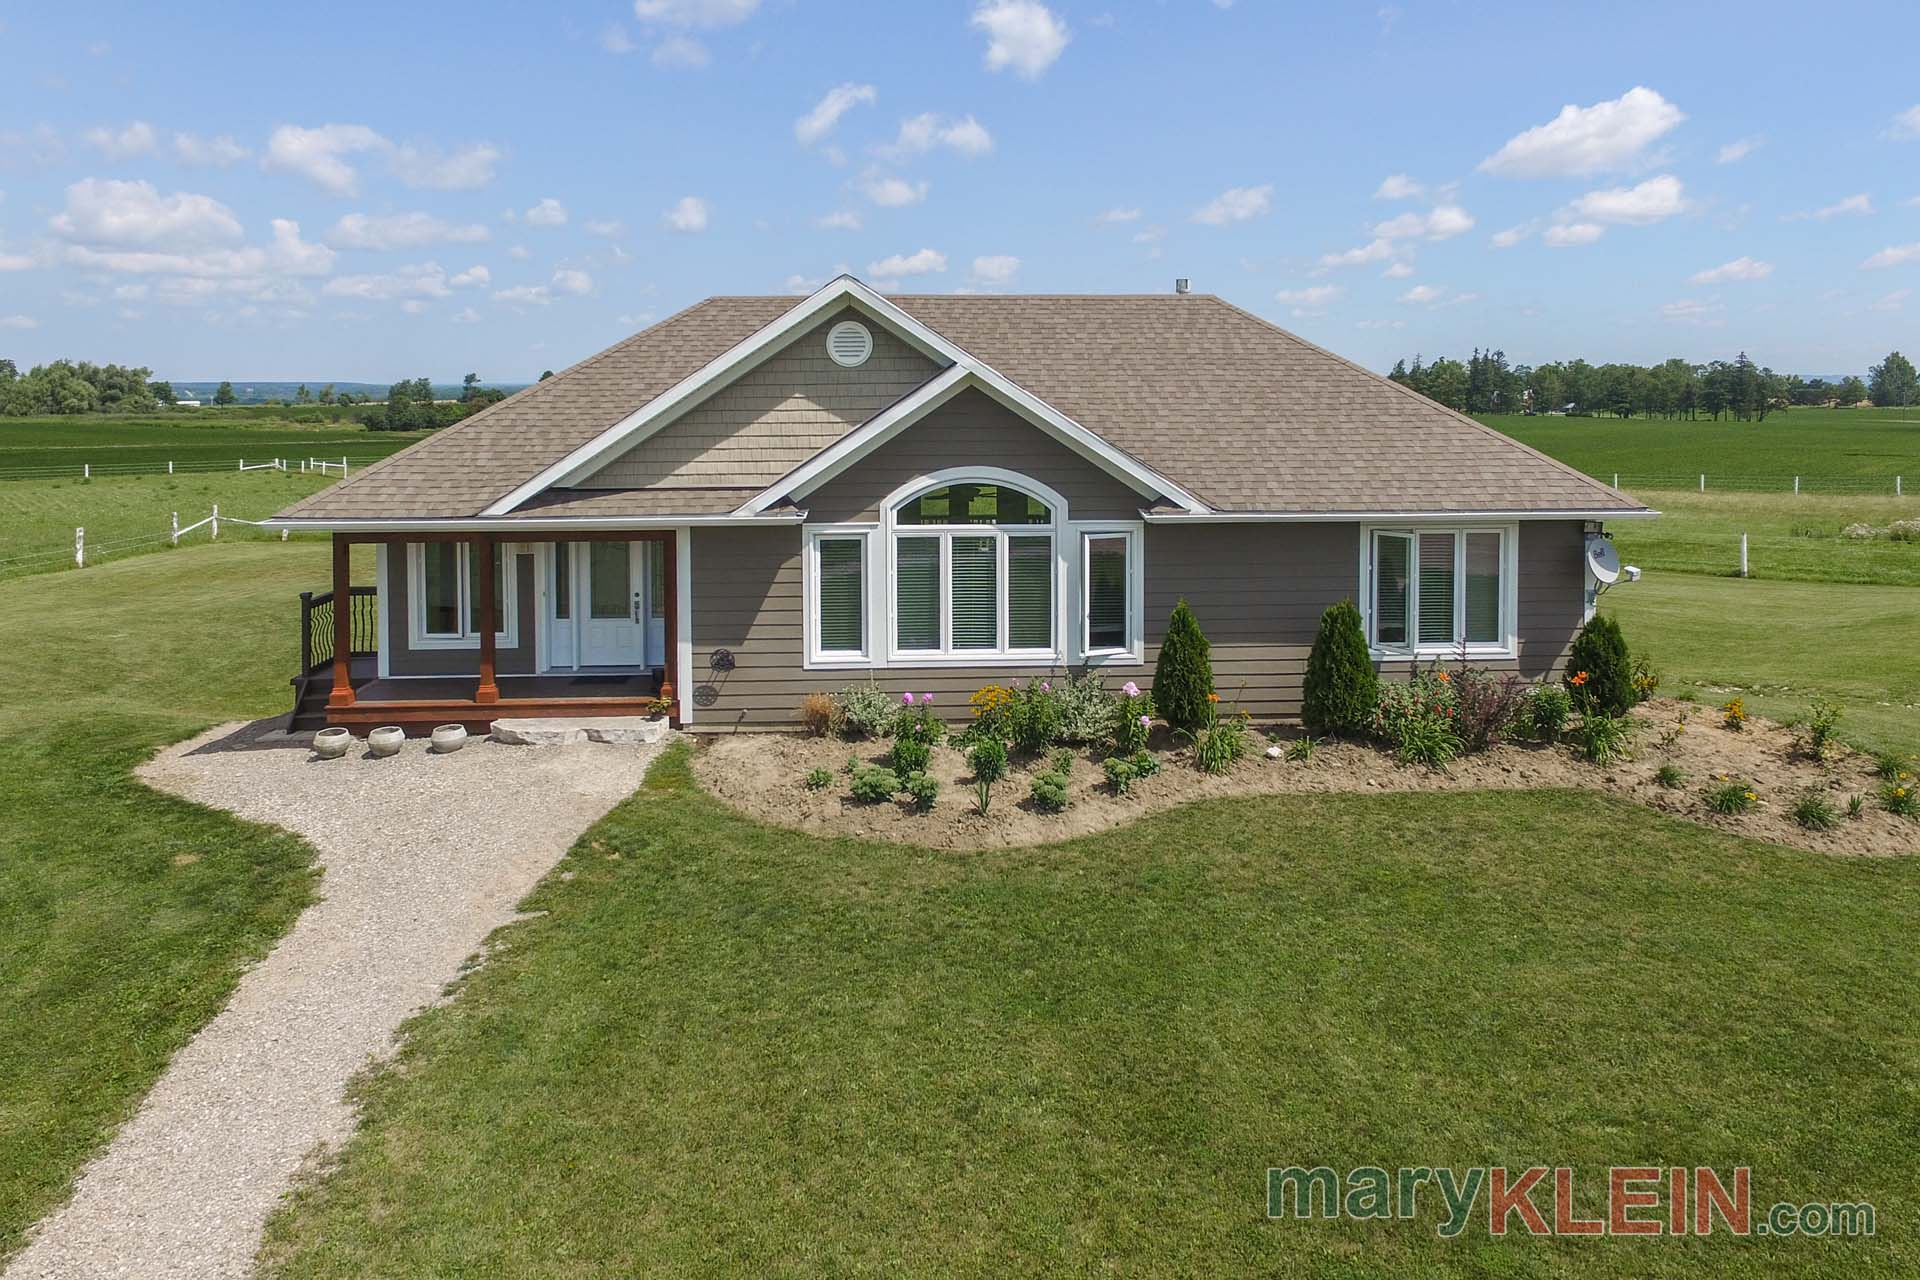 Newer Bungalow for sale, mono, ontario, mary klein, farm for sale